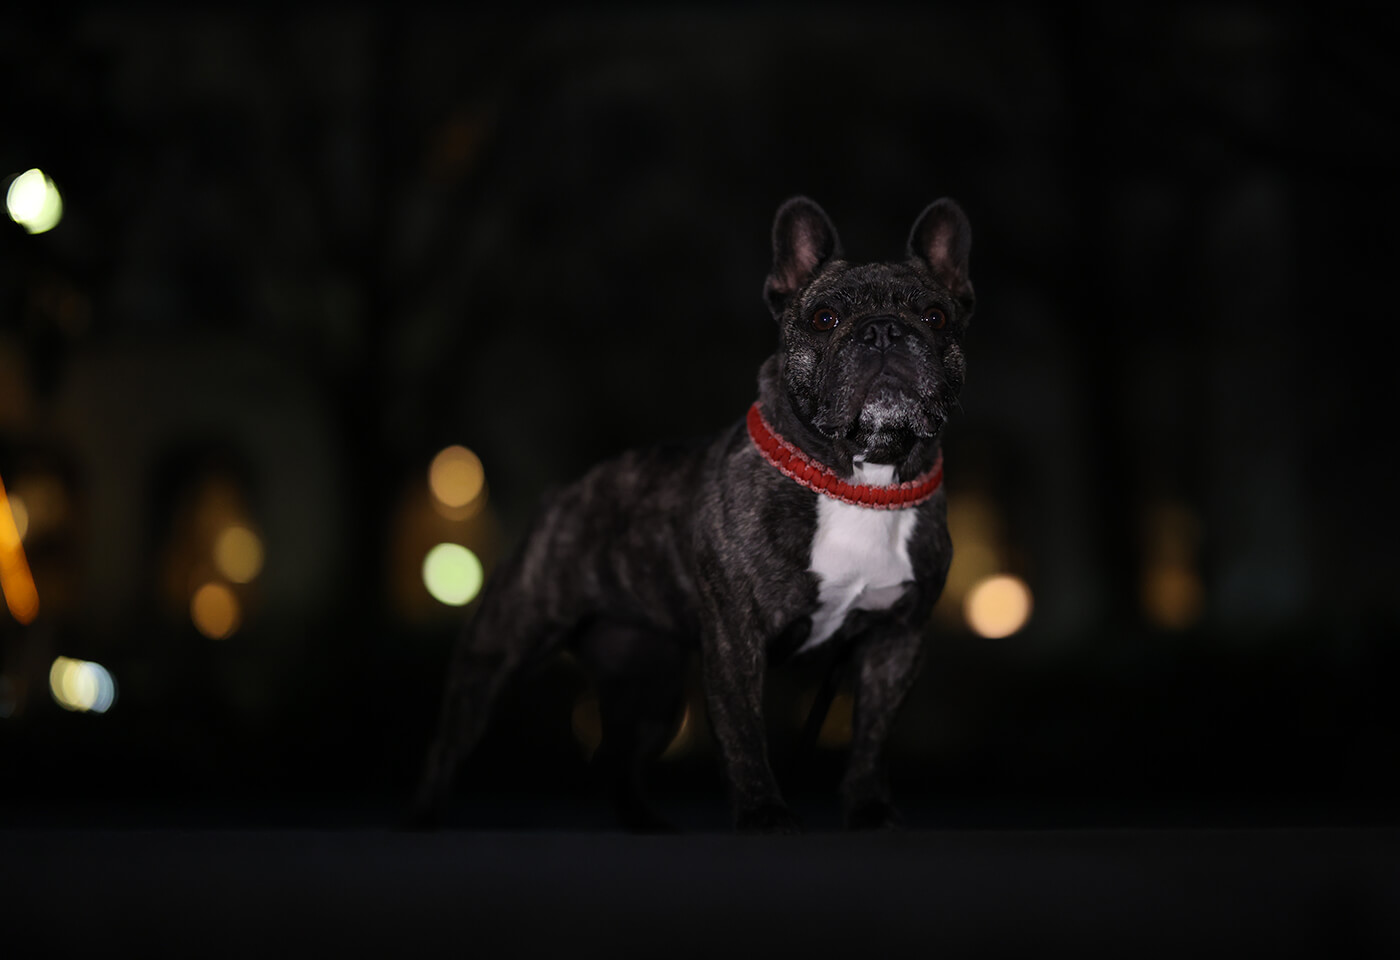 Image of a dog in the dark taken using EOS R6